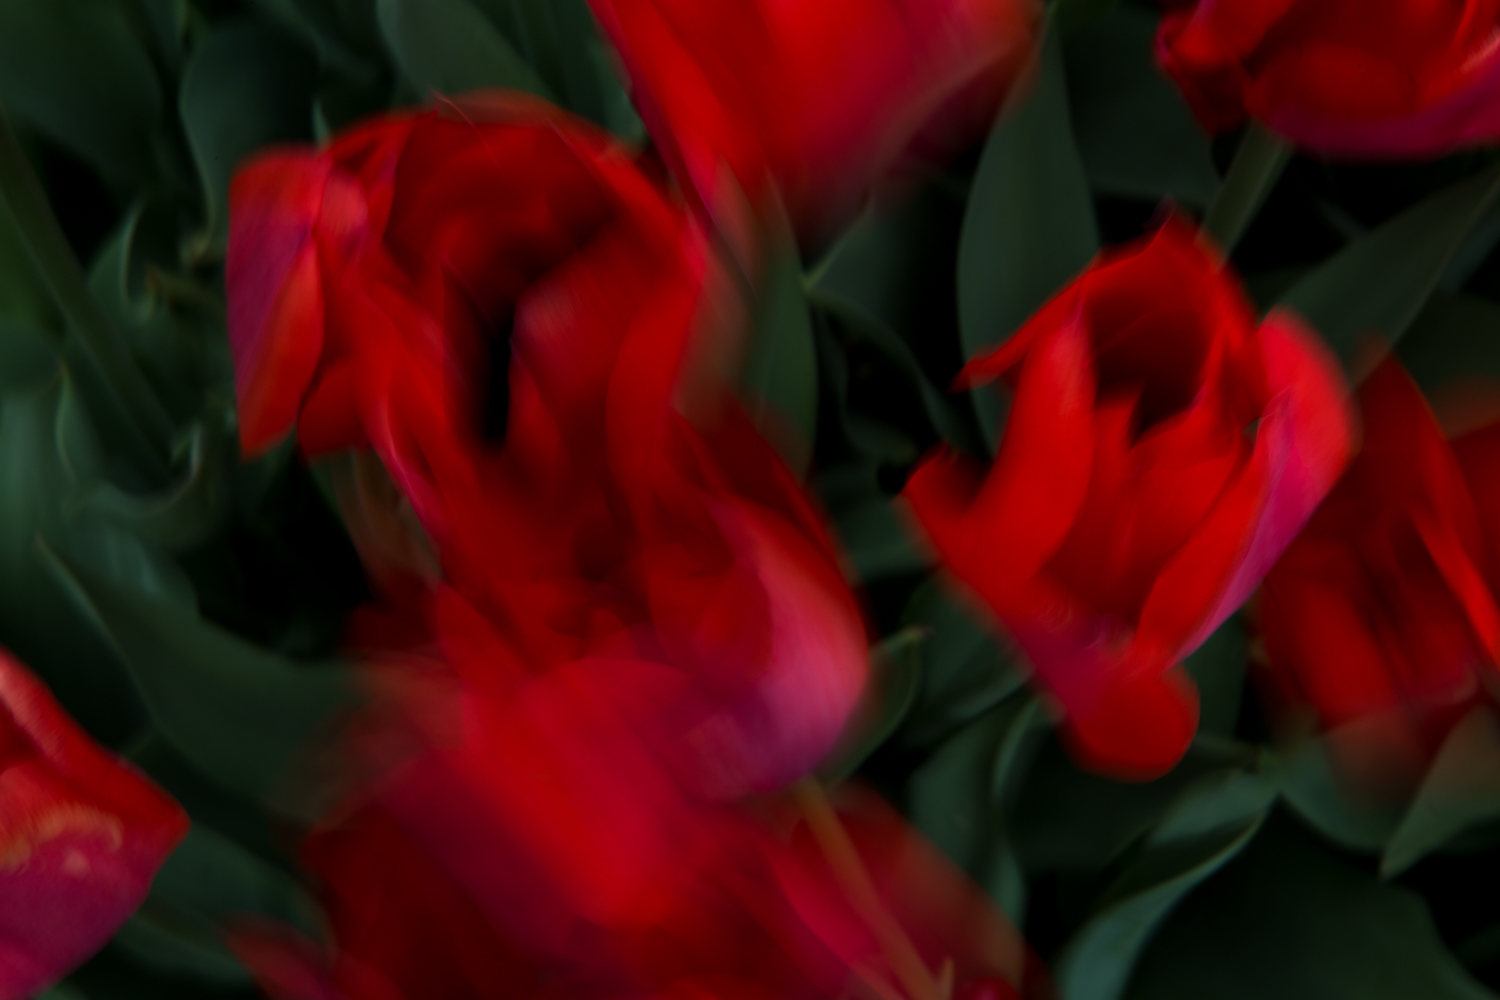 Red Tulips, No. 4